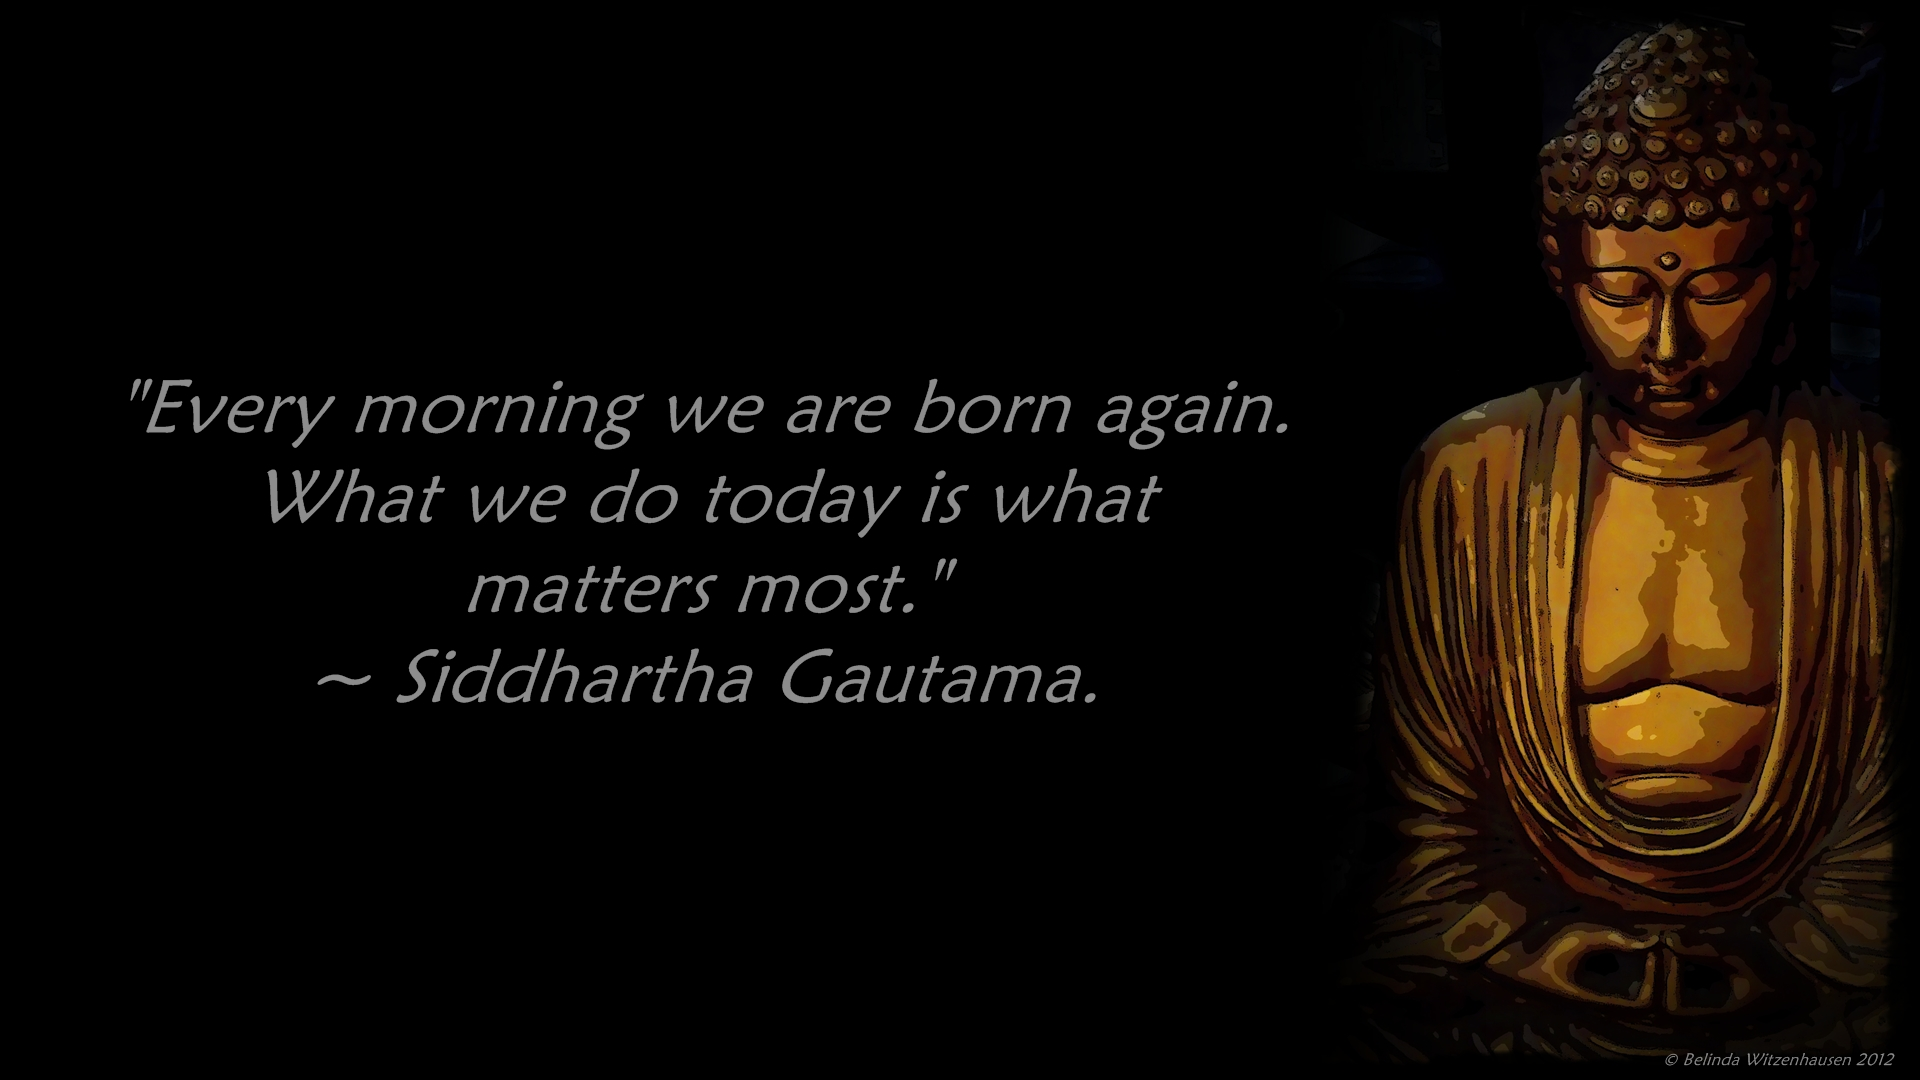 born again what we do today is what matters most siddhartha gautama 1920x1080